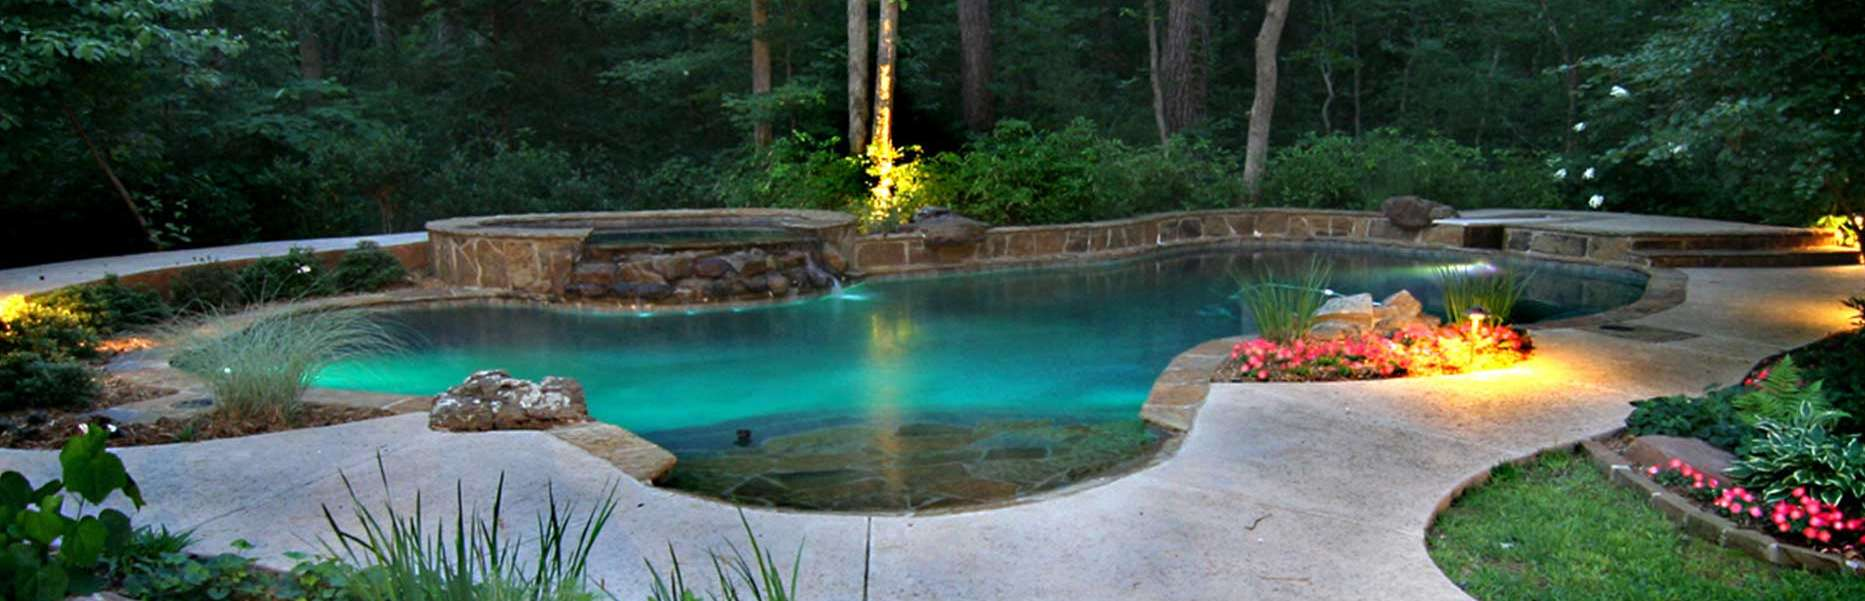 We offer pool repairs and service